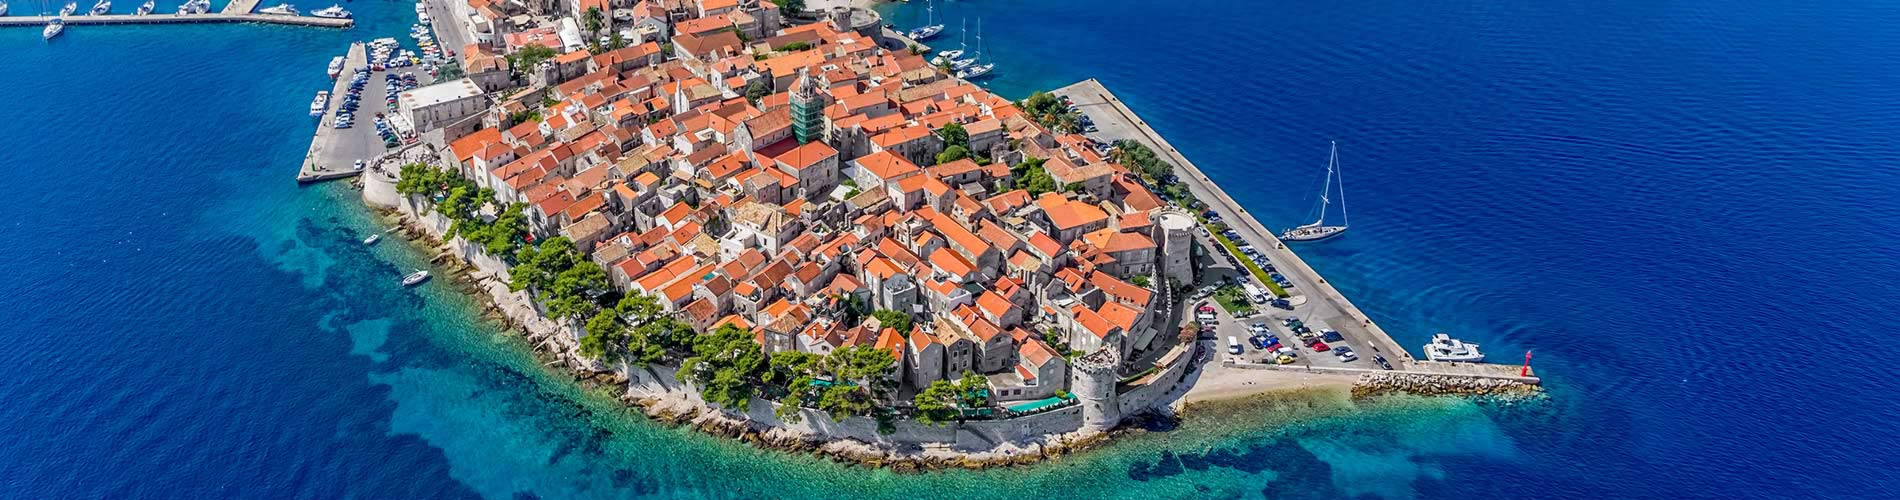 Korcula Town Croatia Holiday.jpg